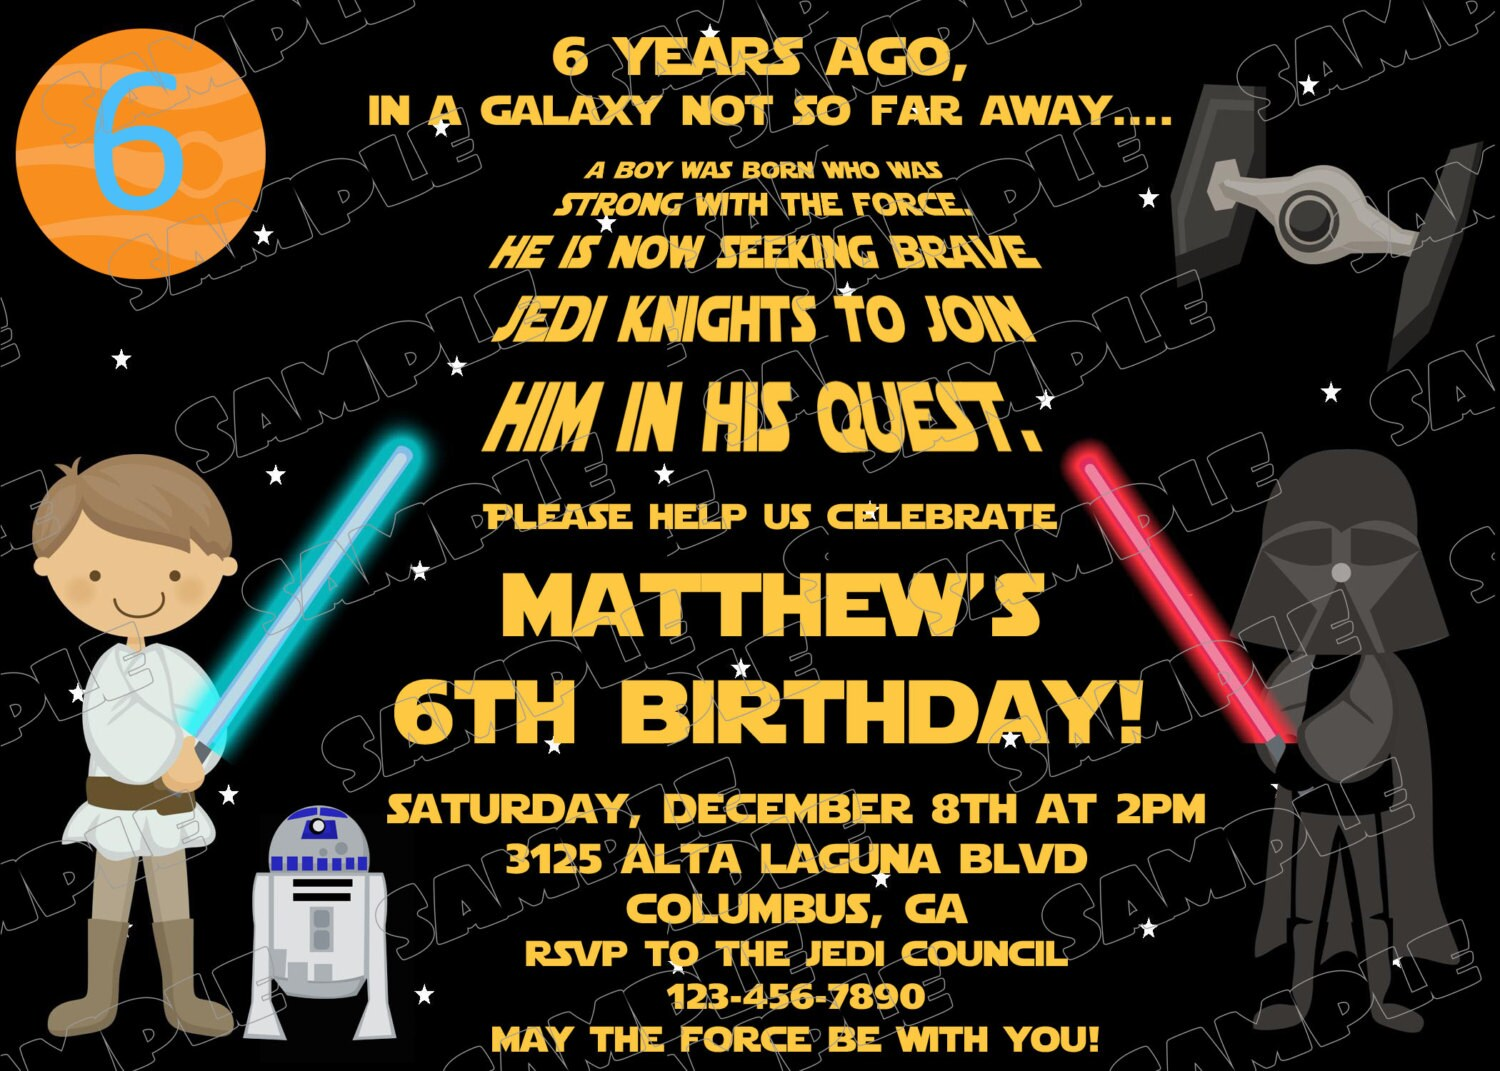 Star wars scroll birthday party printable invitations uprint star wars scroll birthday party printable invitations uprint customized card by greenmelonstudios filmwisefo Images